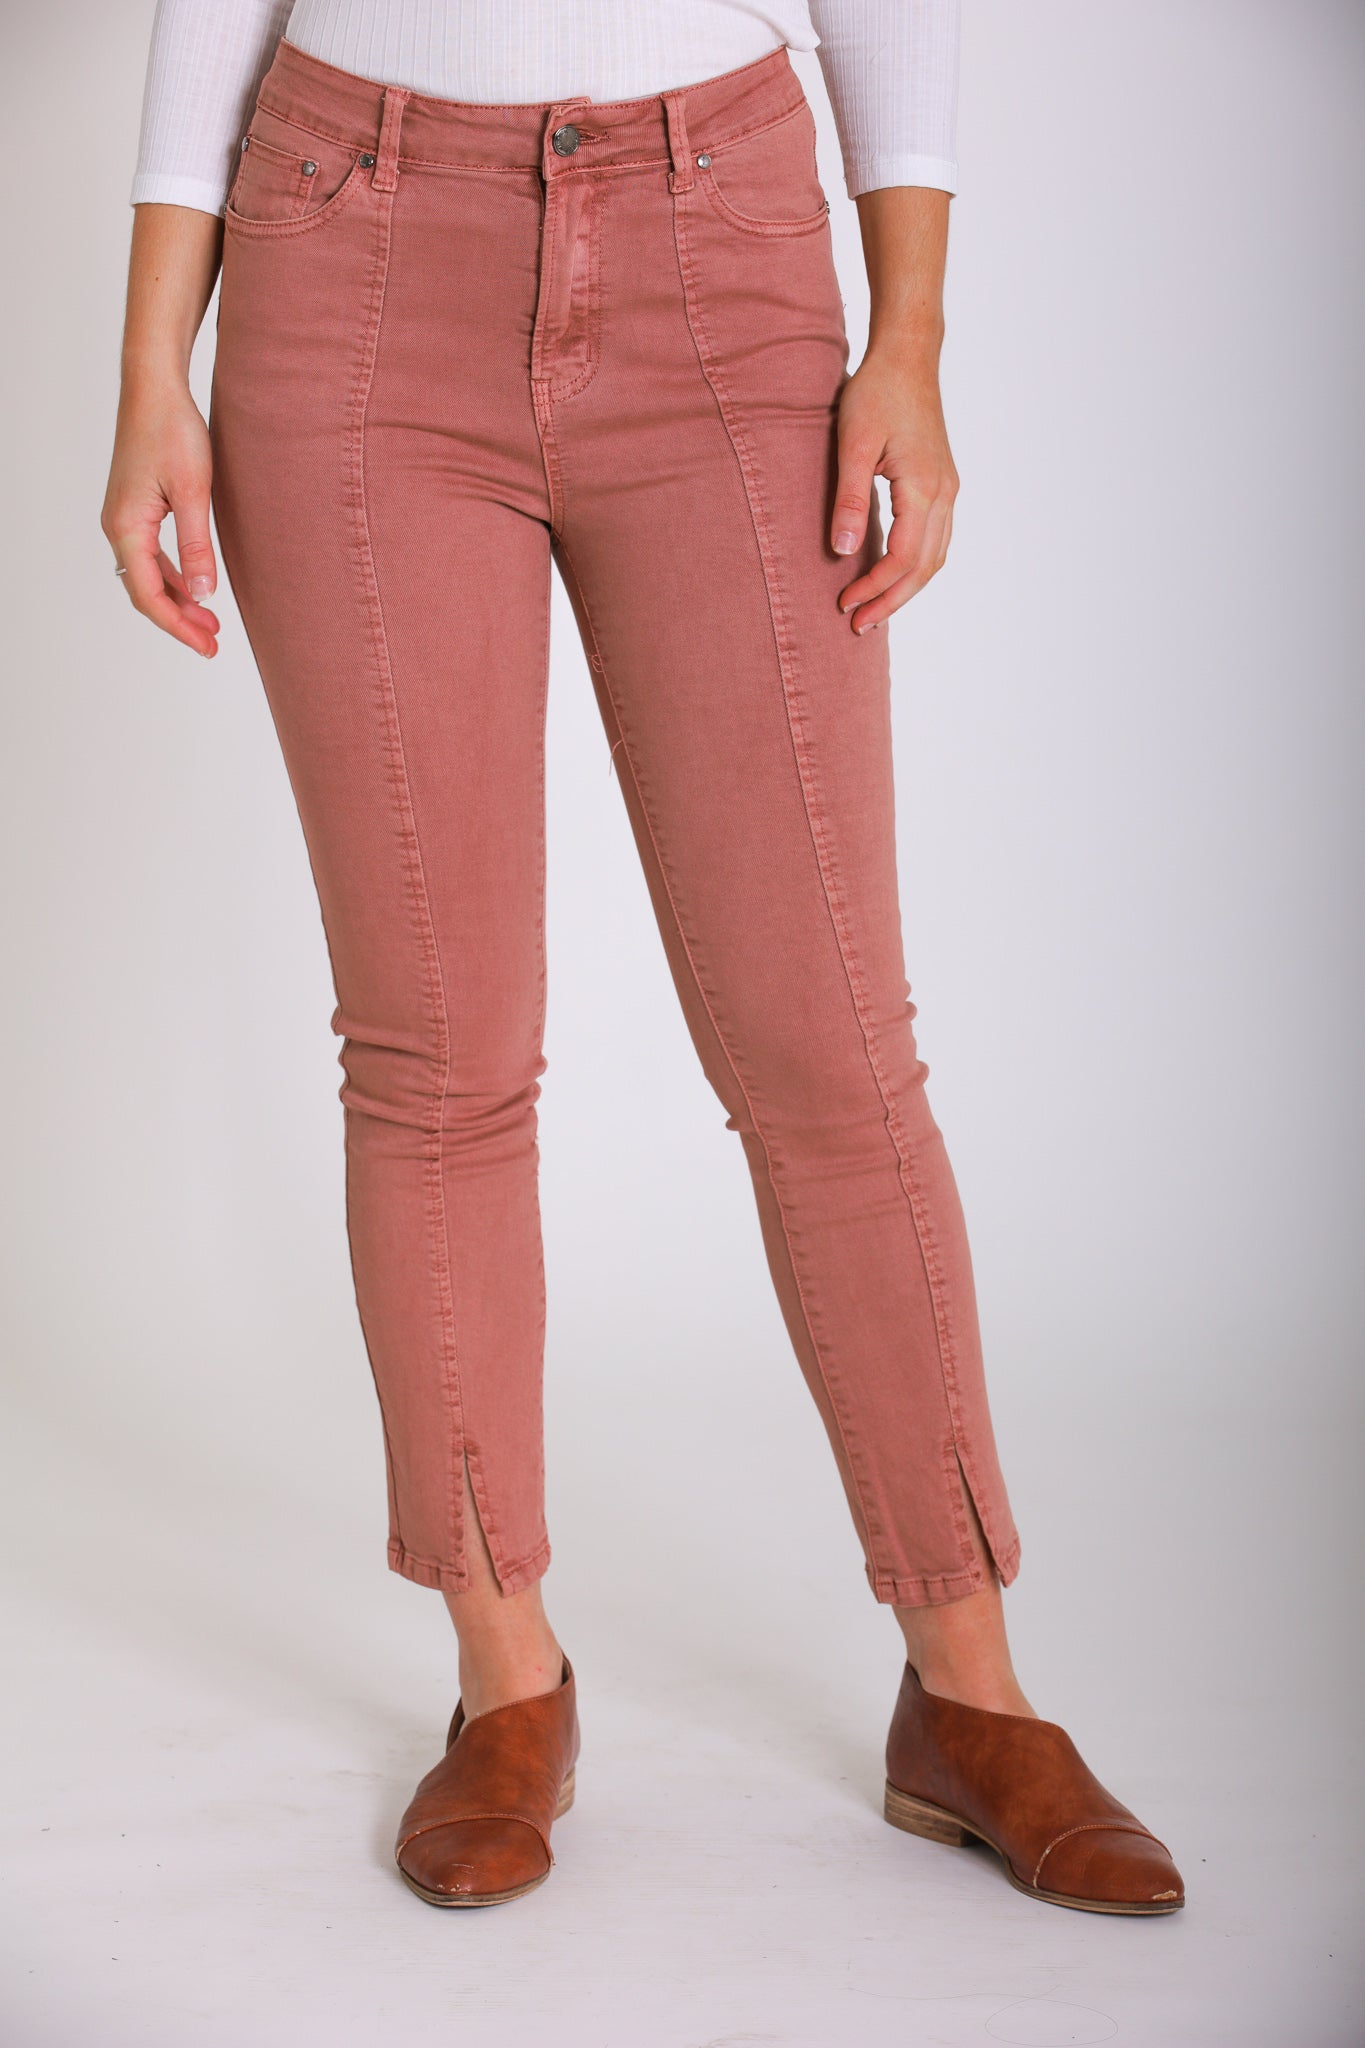 Made for You Cropped Jeans - Salmon - Pants - Wight Elephant Boutique